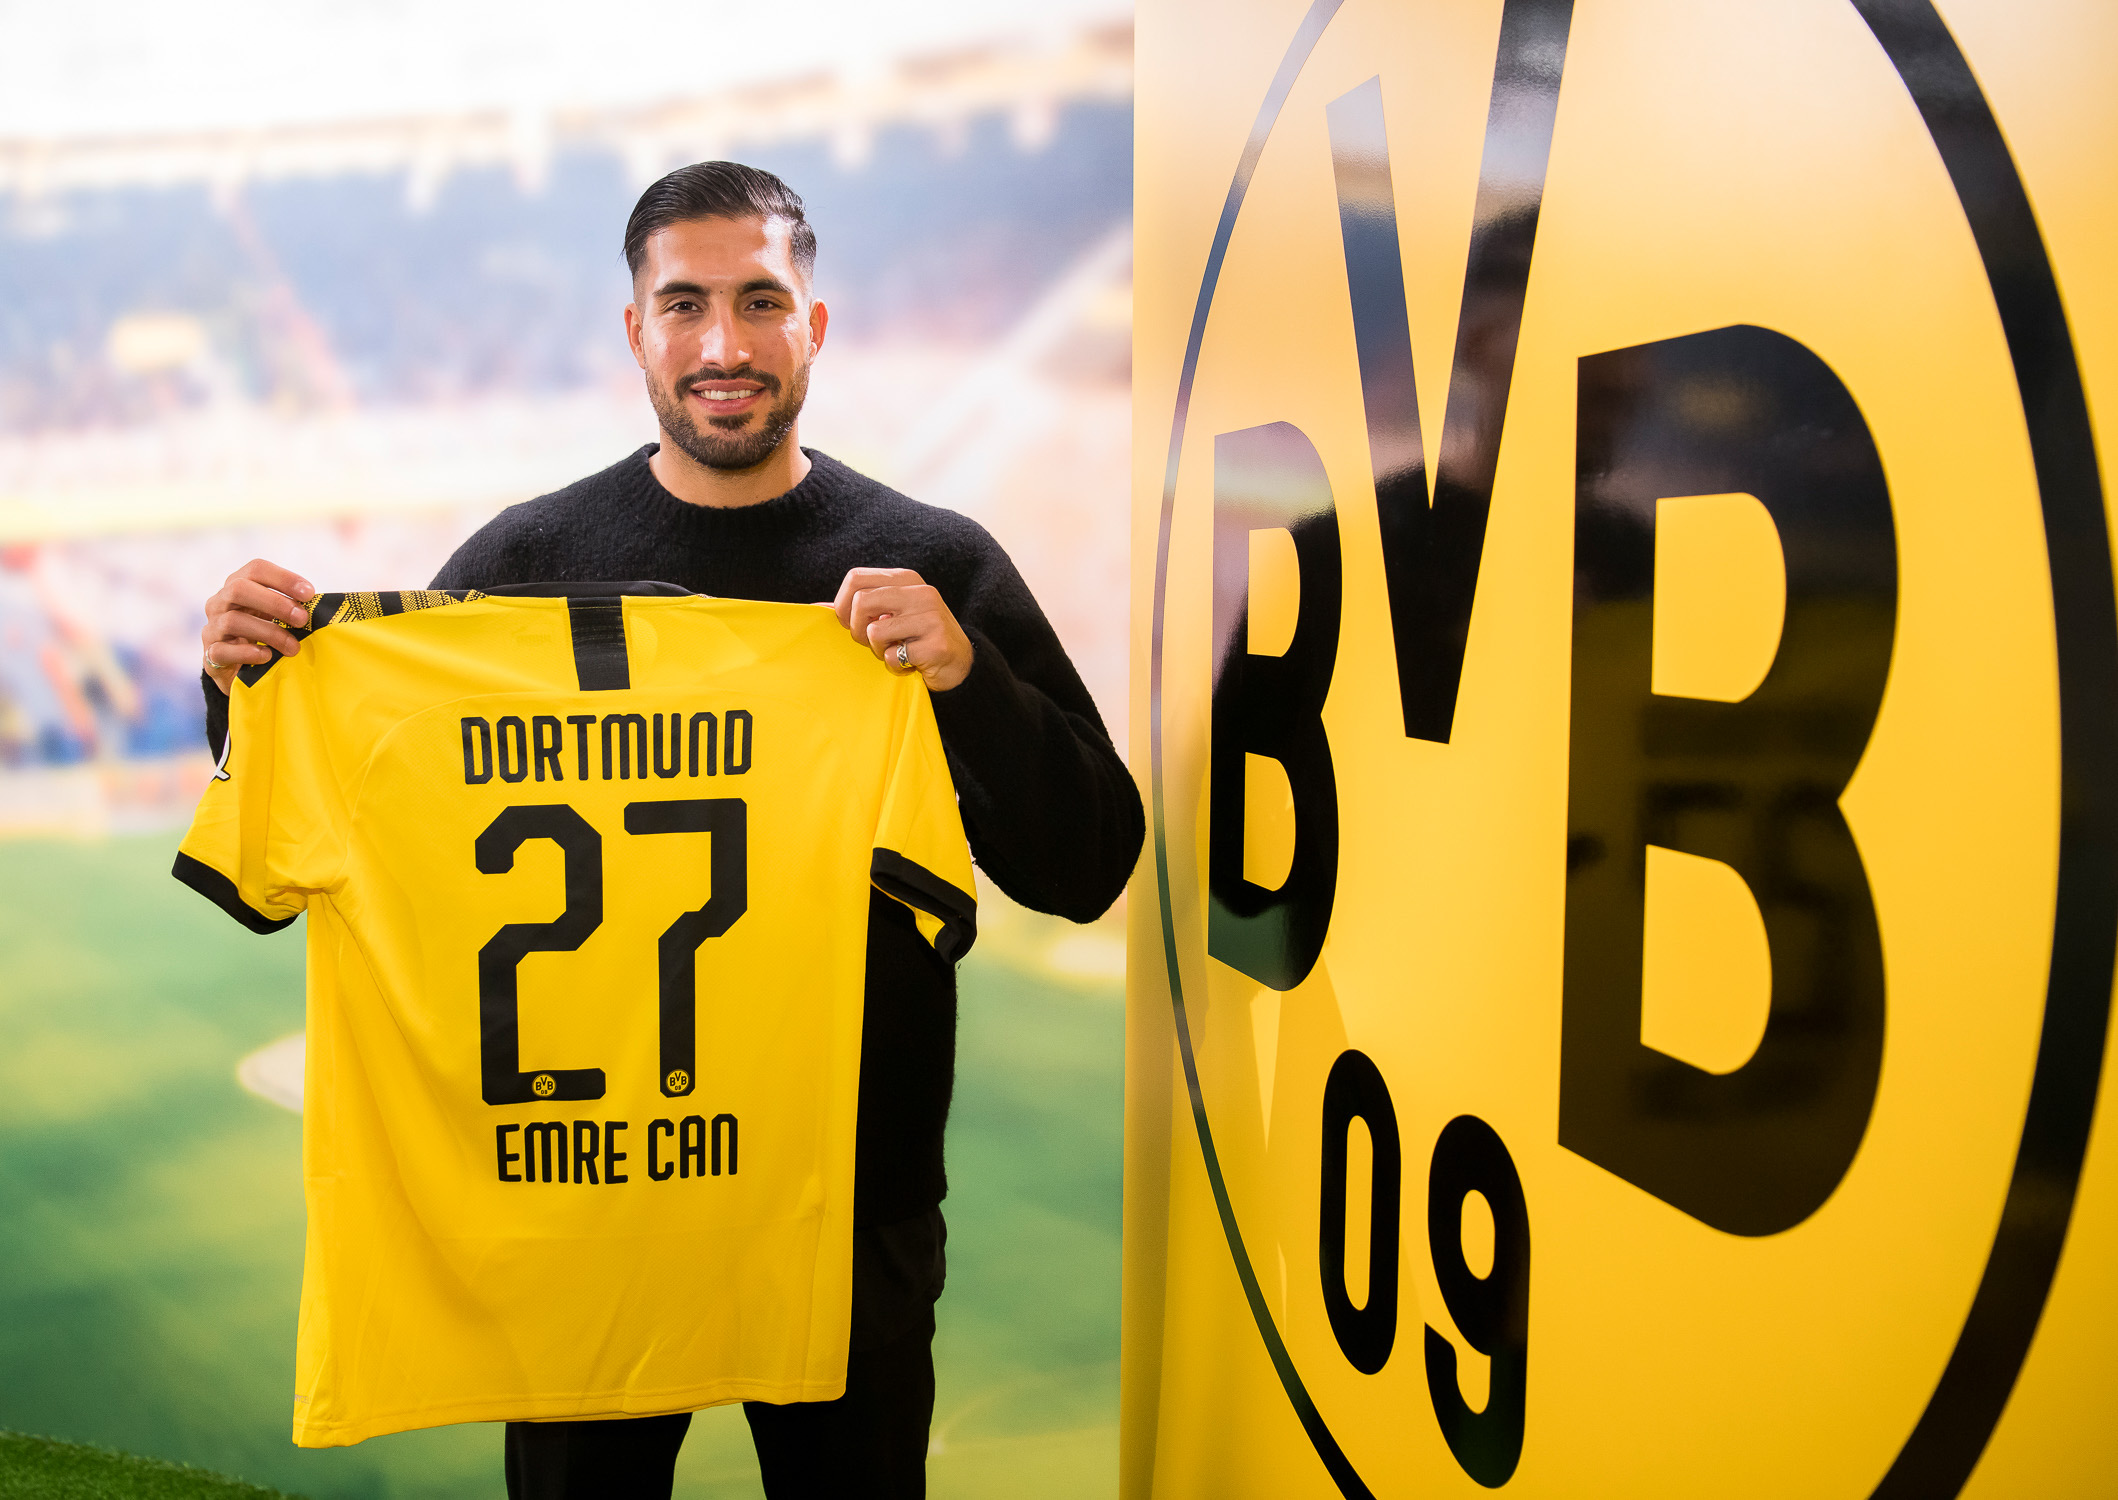 Alcacer moves away from Haaland's path, Emre Can joins BVB